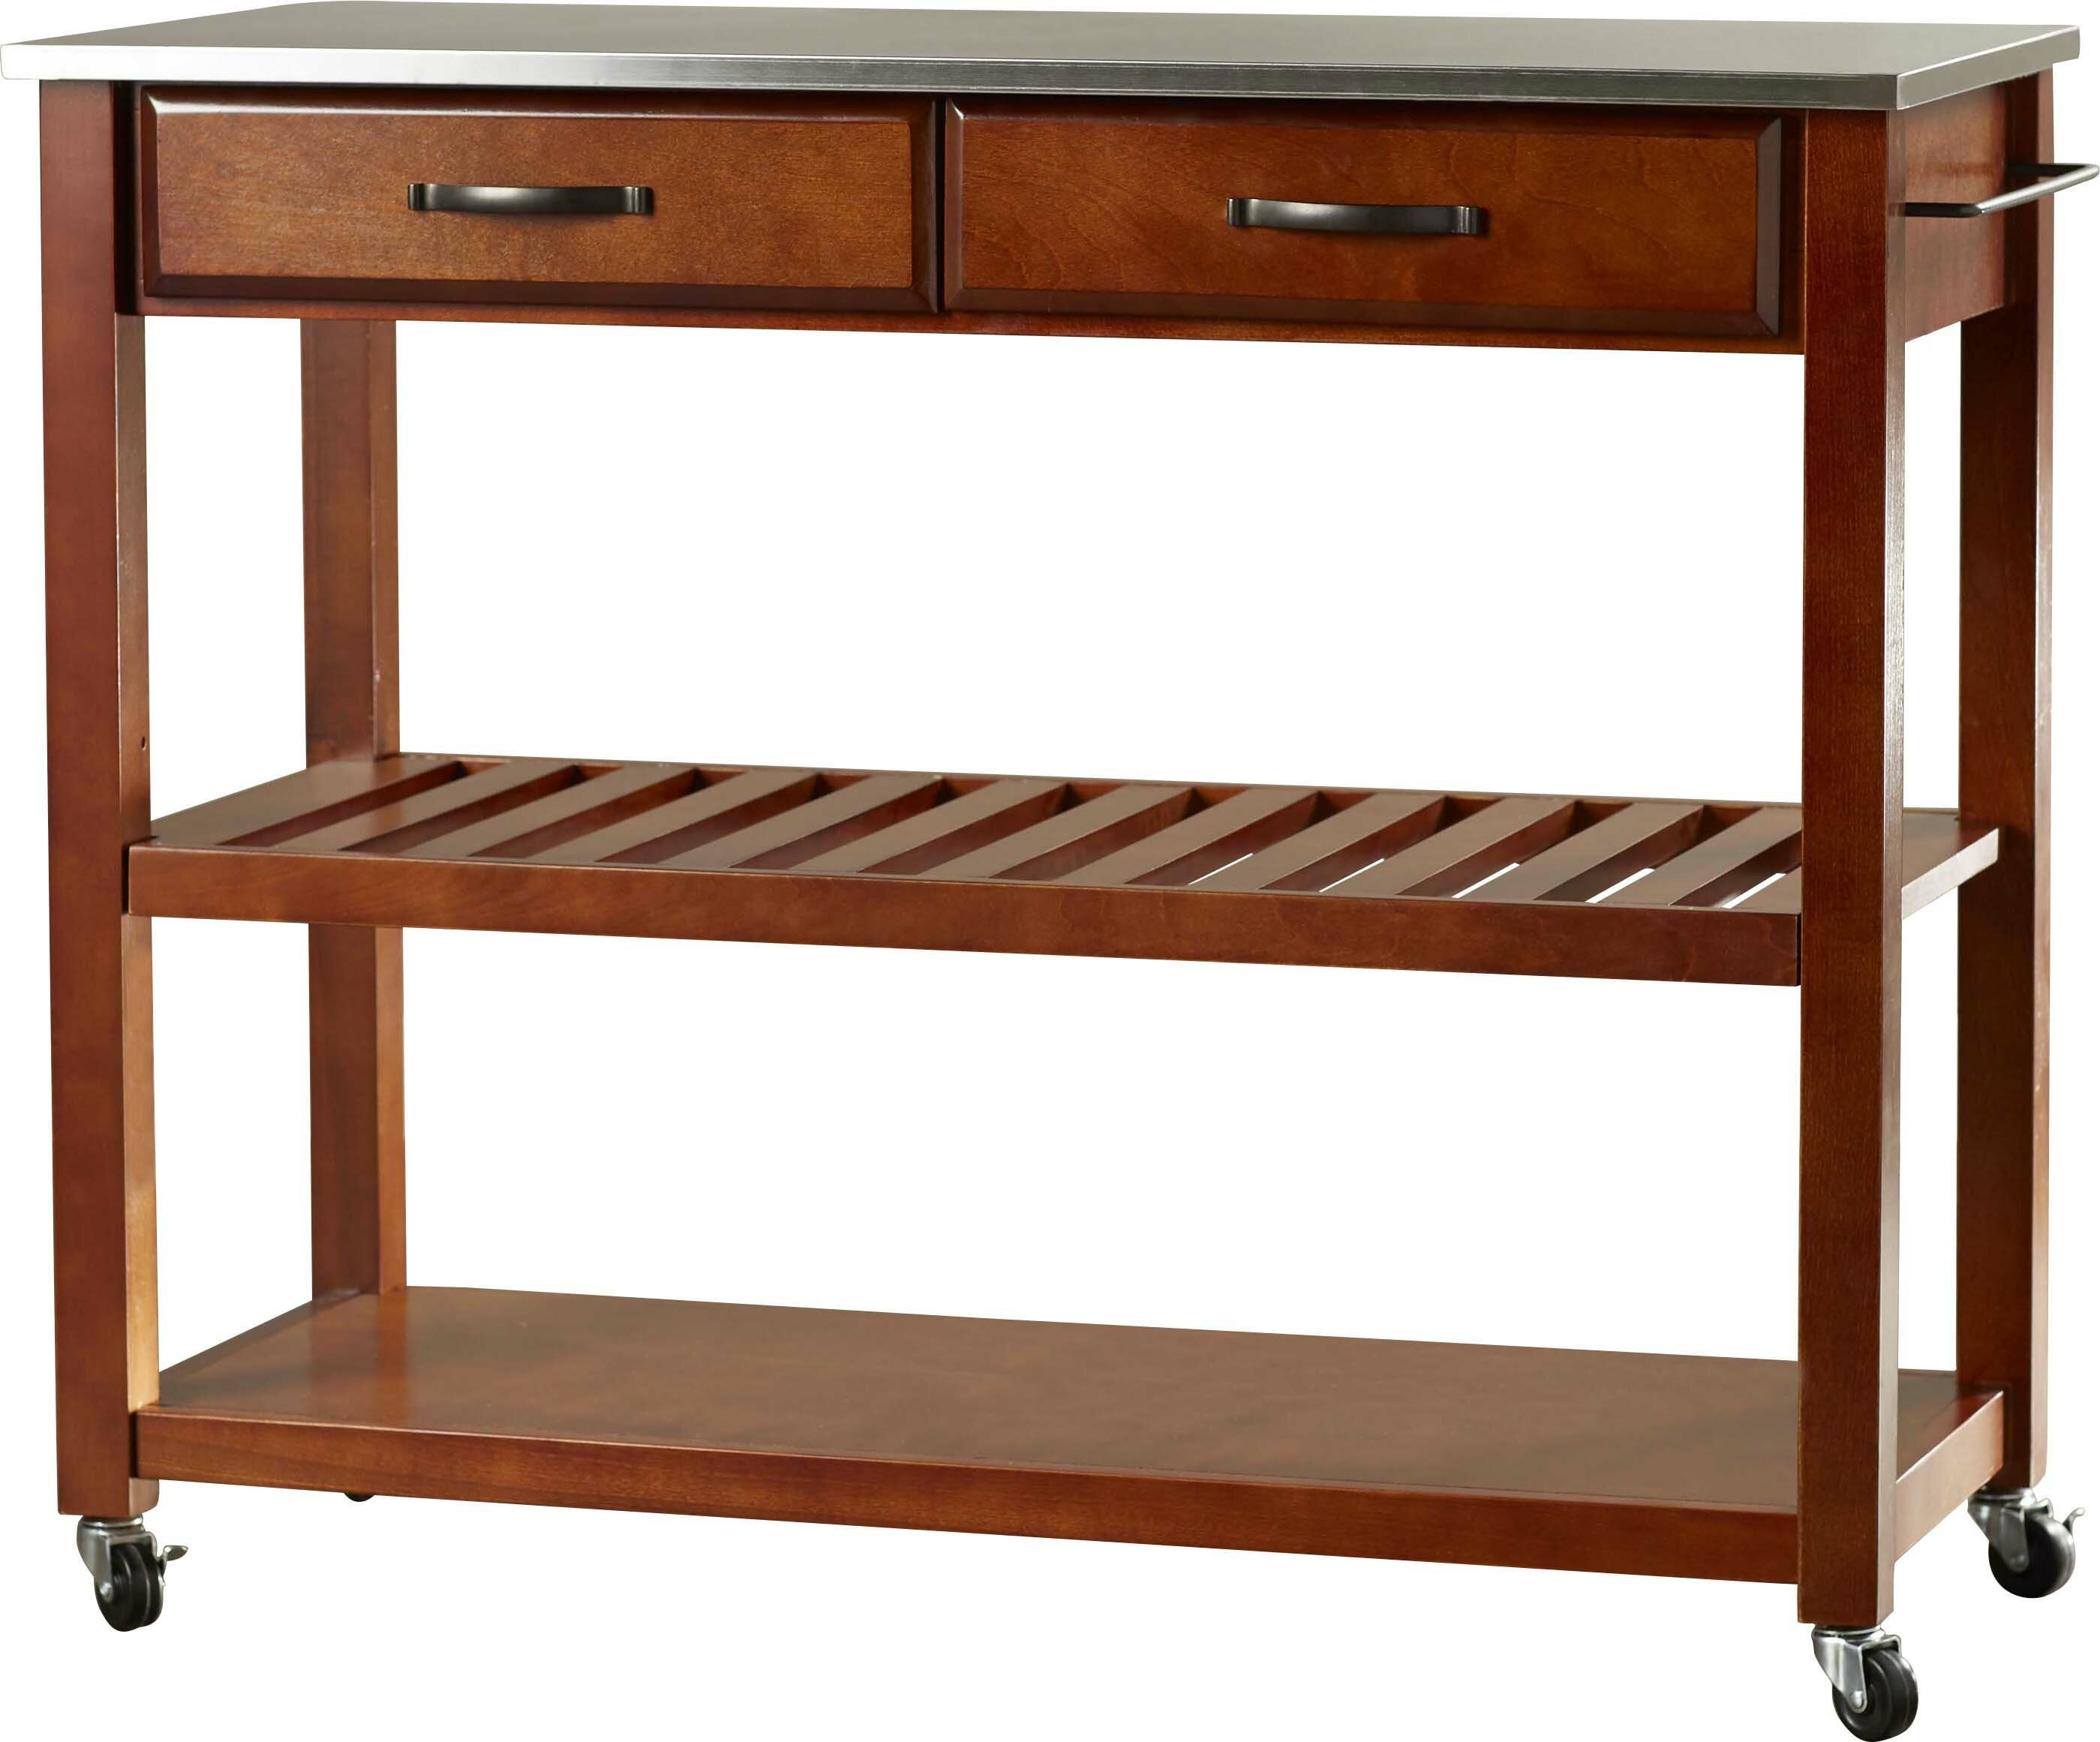 Haslingden Kitchen Island with Stainless Steel Top